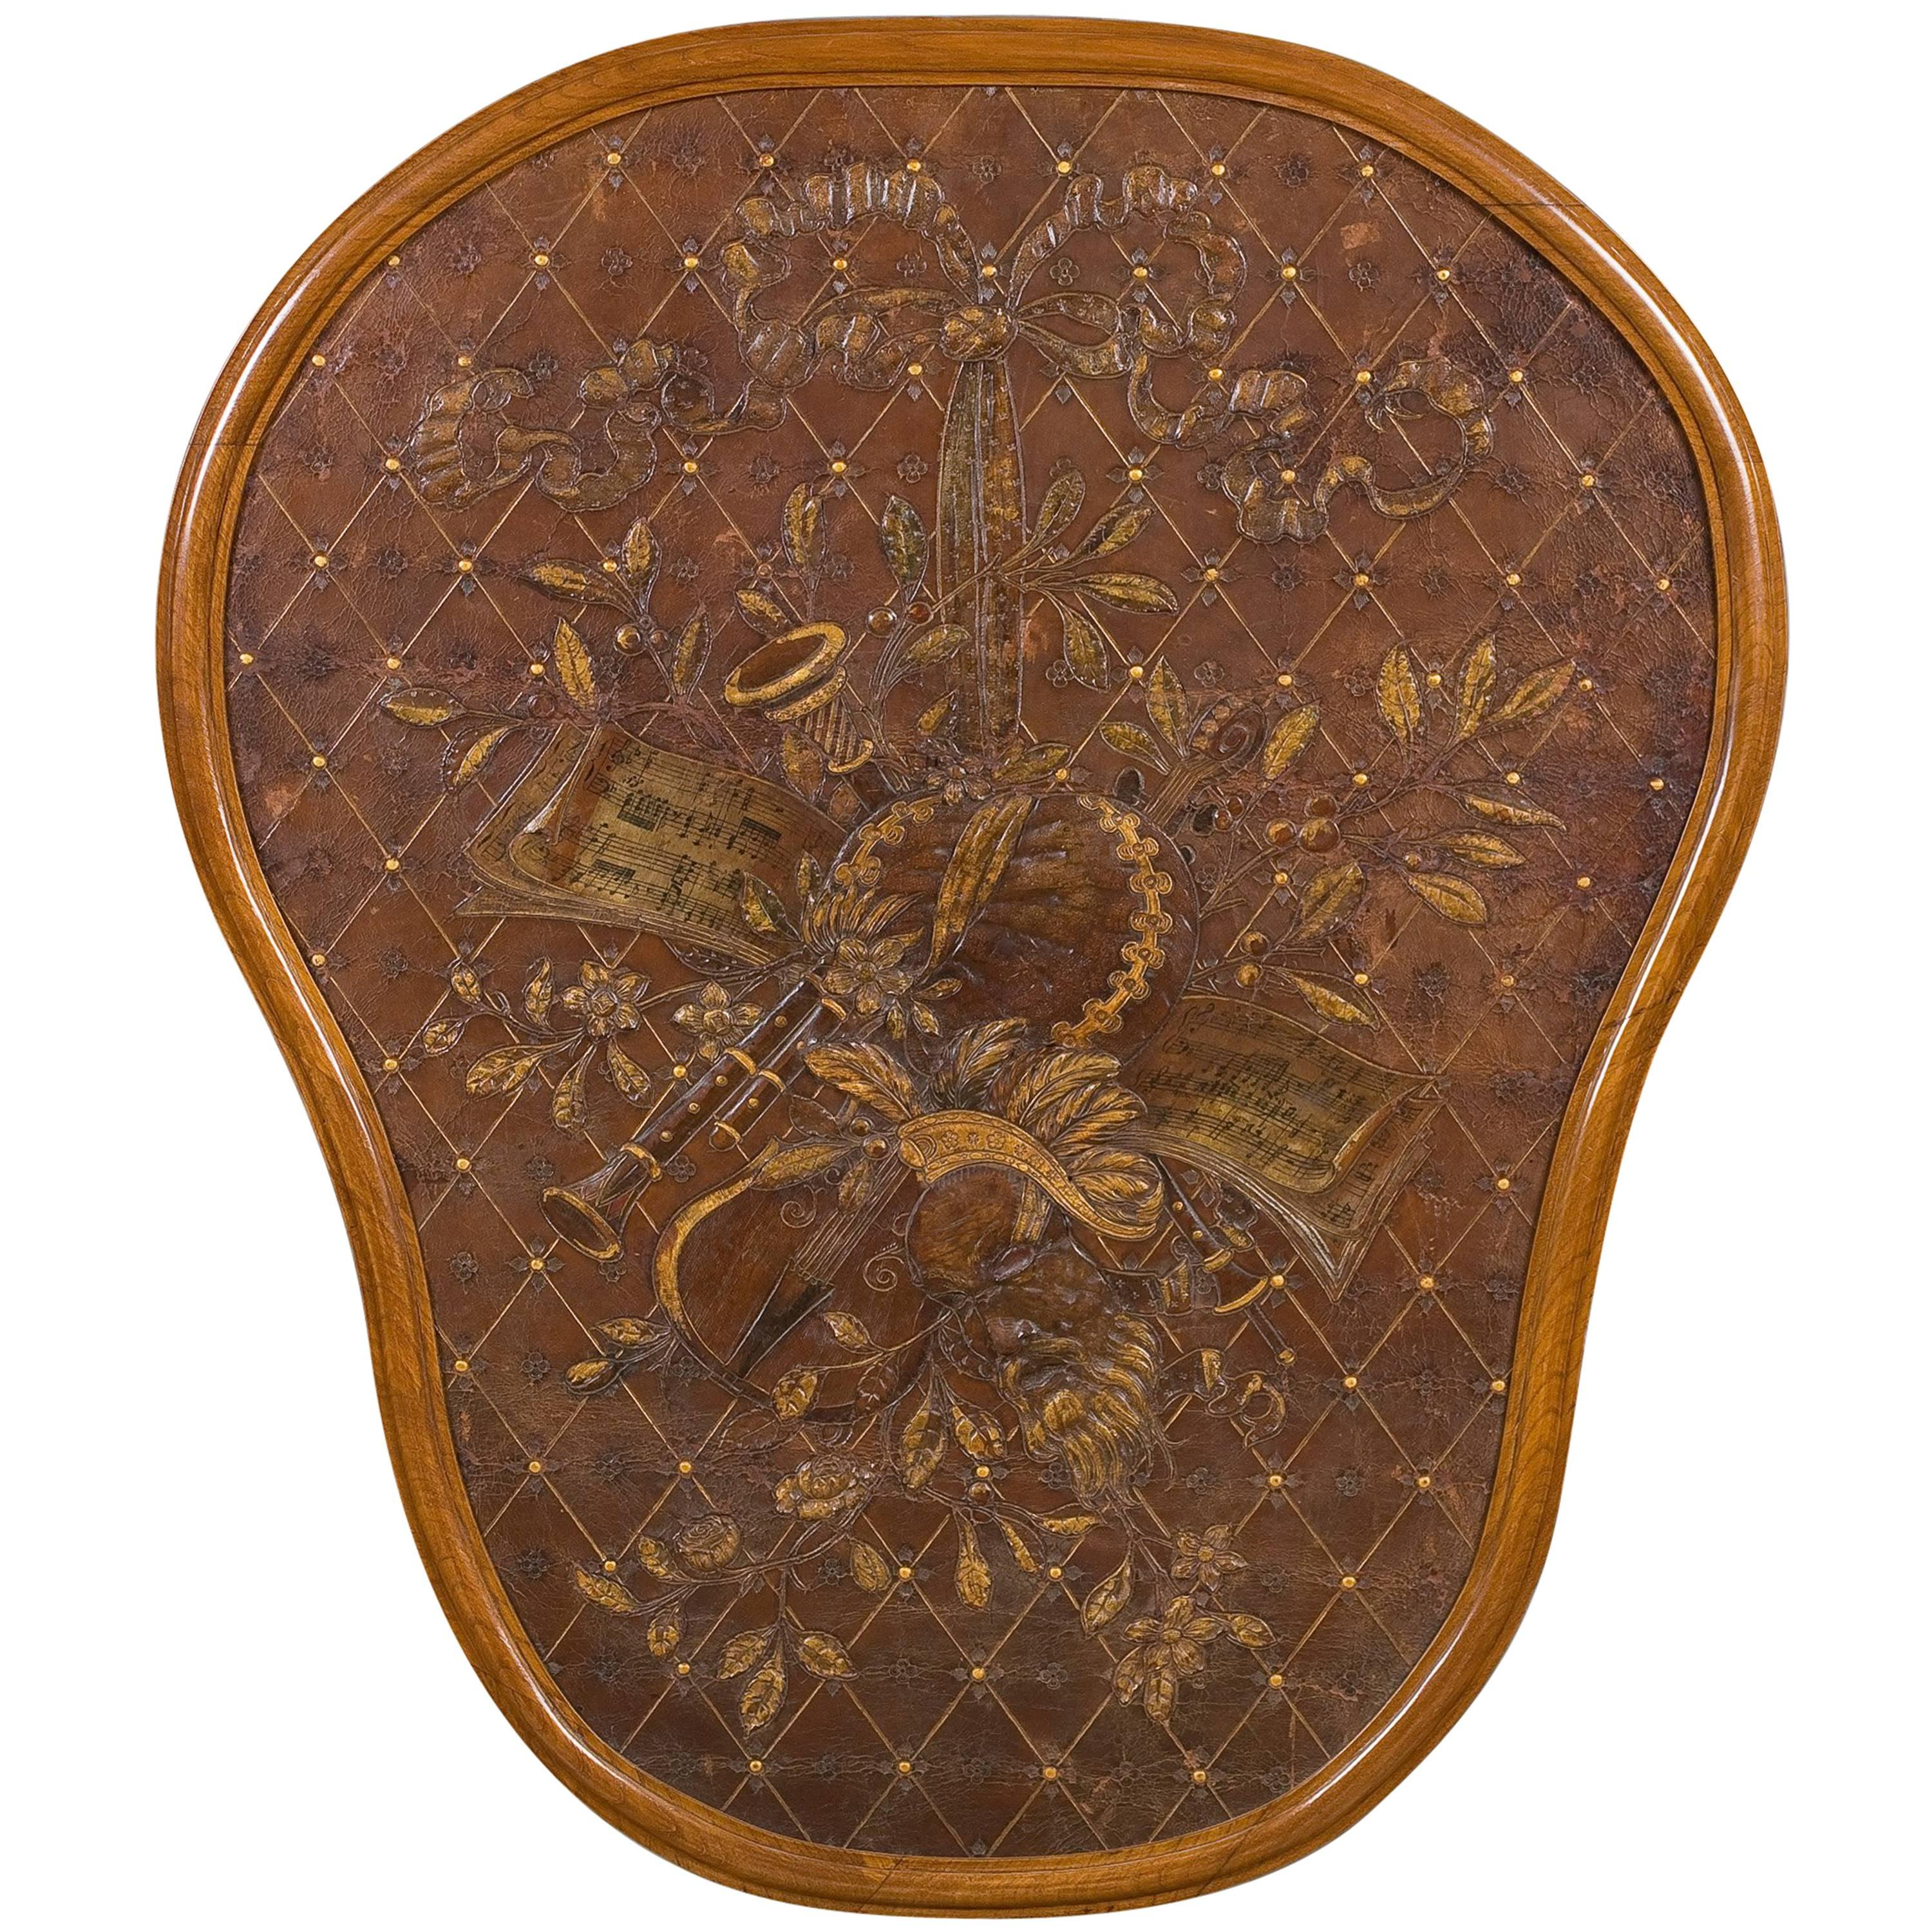 French Embossed Leather Panel, 19th Century